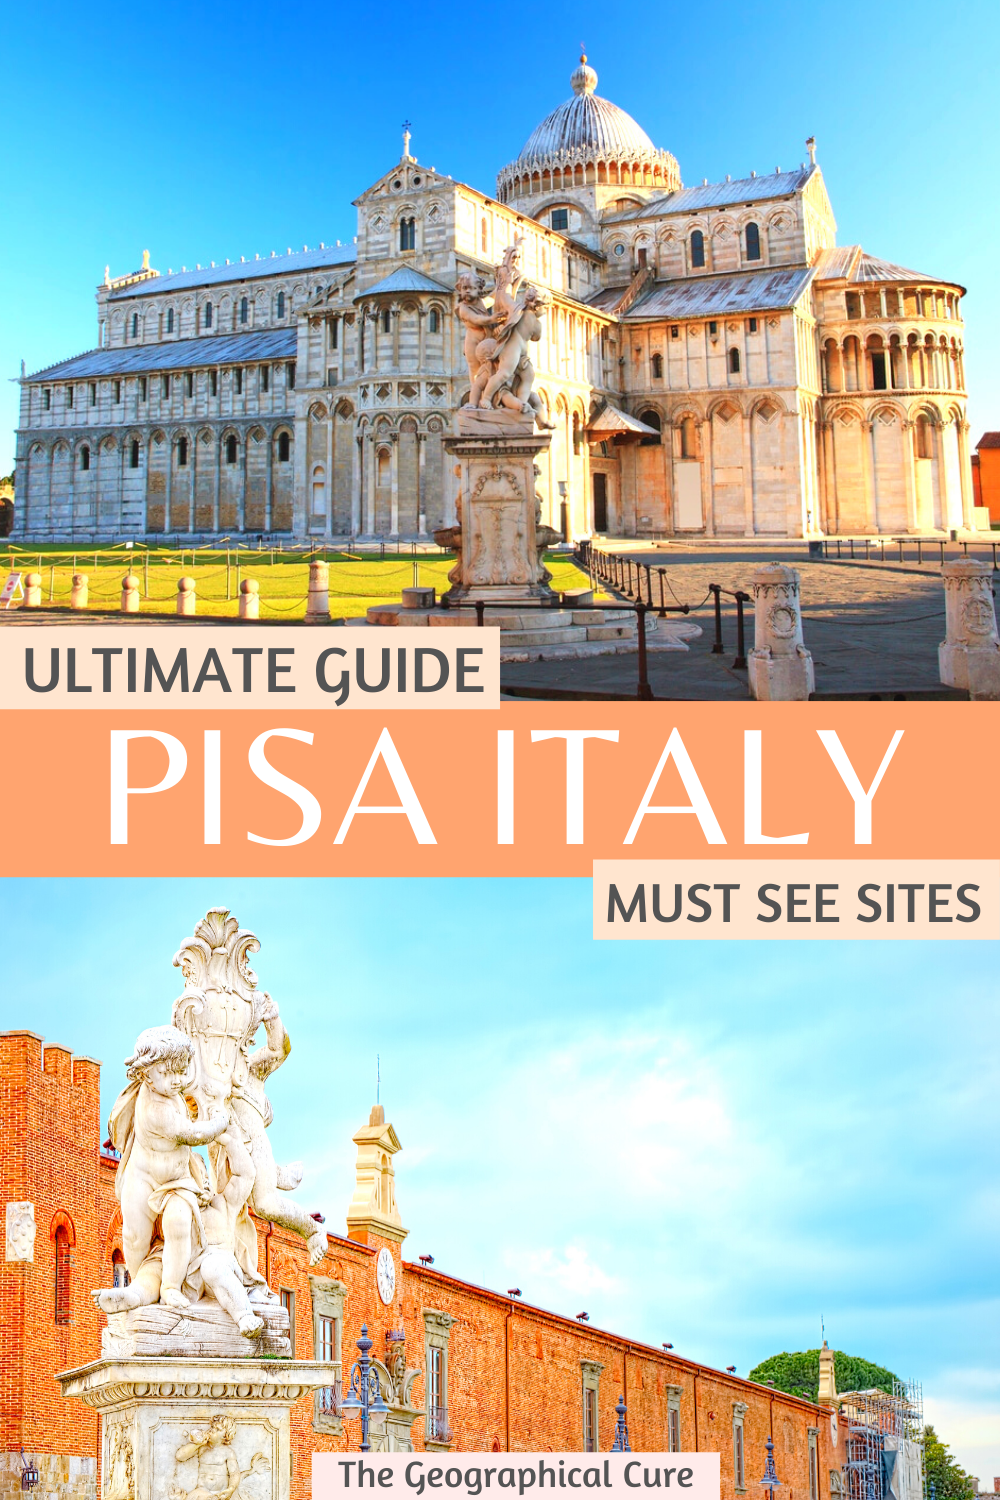 Ultimate Guide To Pisa Italy: Every Must See historic Site